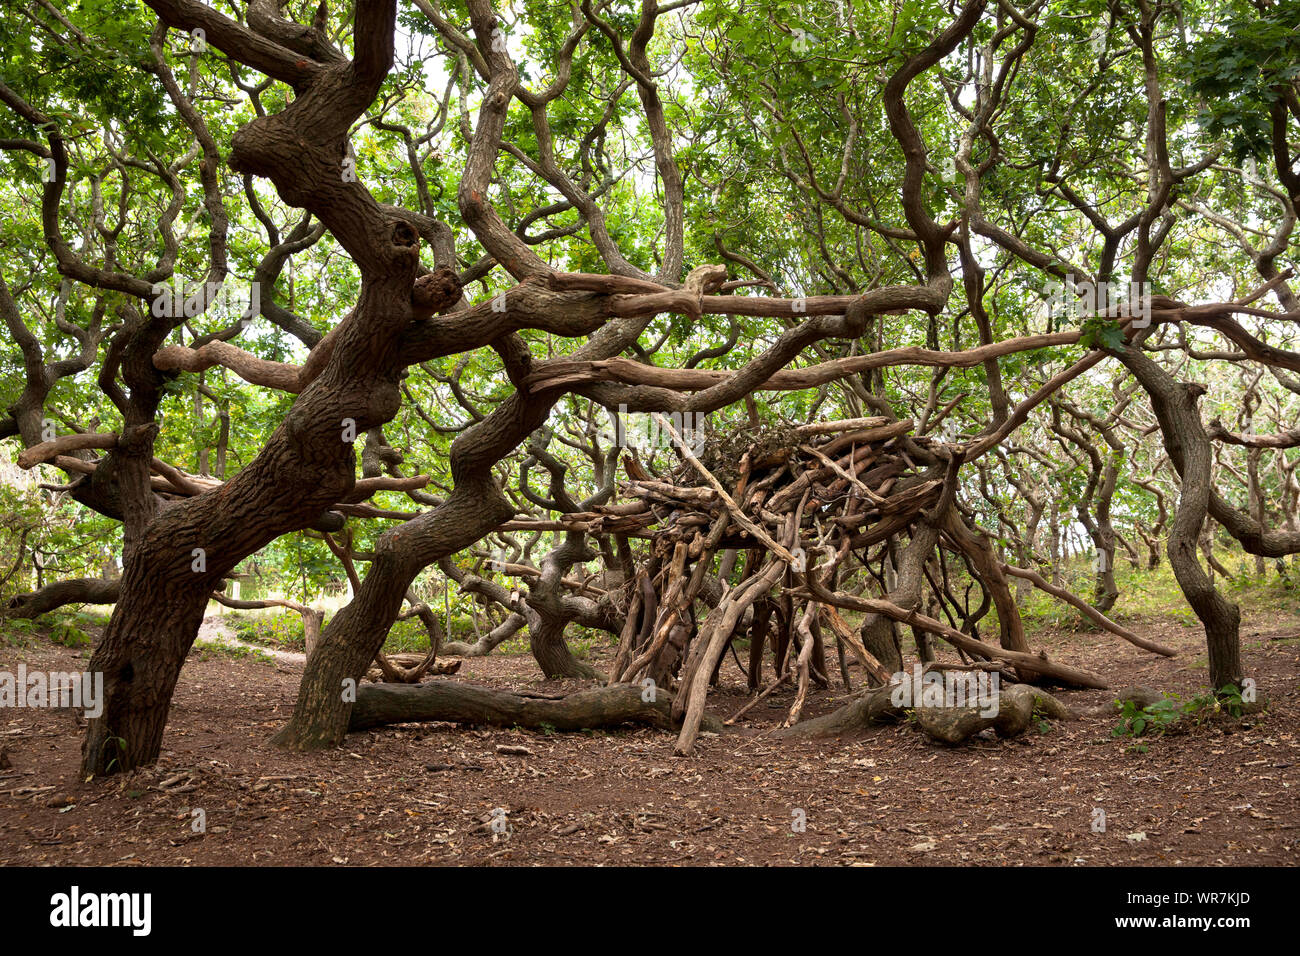 simple shelter built with tree trunks and branches in the nature reserve de Manteling near Domburg on Walcheren, Zeeland, Netherlands.  einfacher Unte Stock Photo